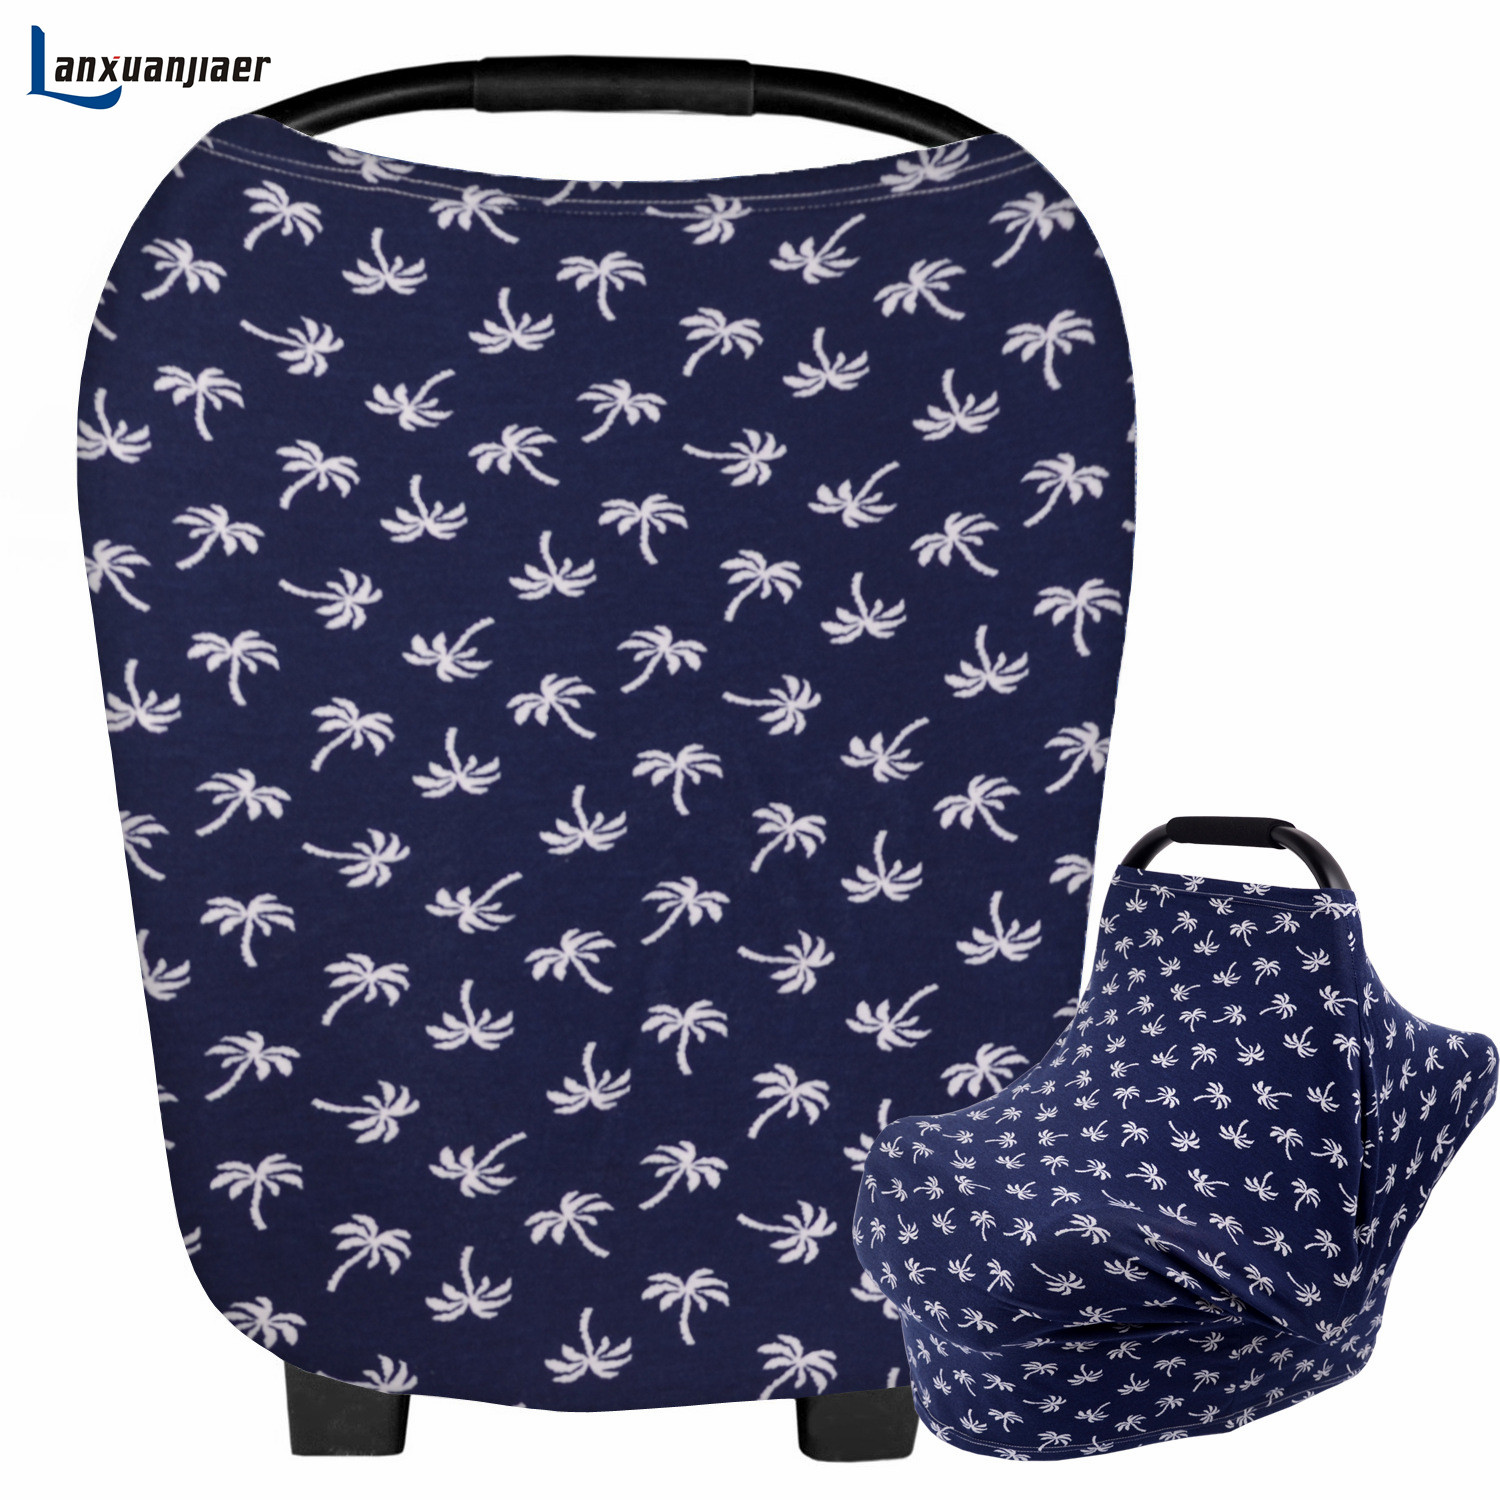 Lanxuanjiaer Baby Car Seat Cover Multi Use Nursing Cover Grocery Cart Cover cotton Stretchy Canopy breedfeeding Covers